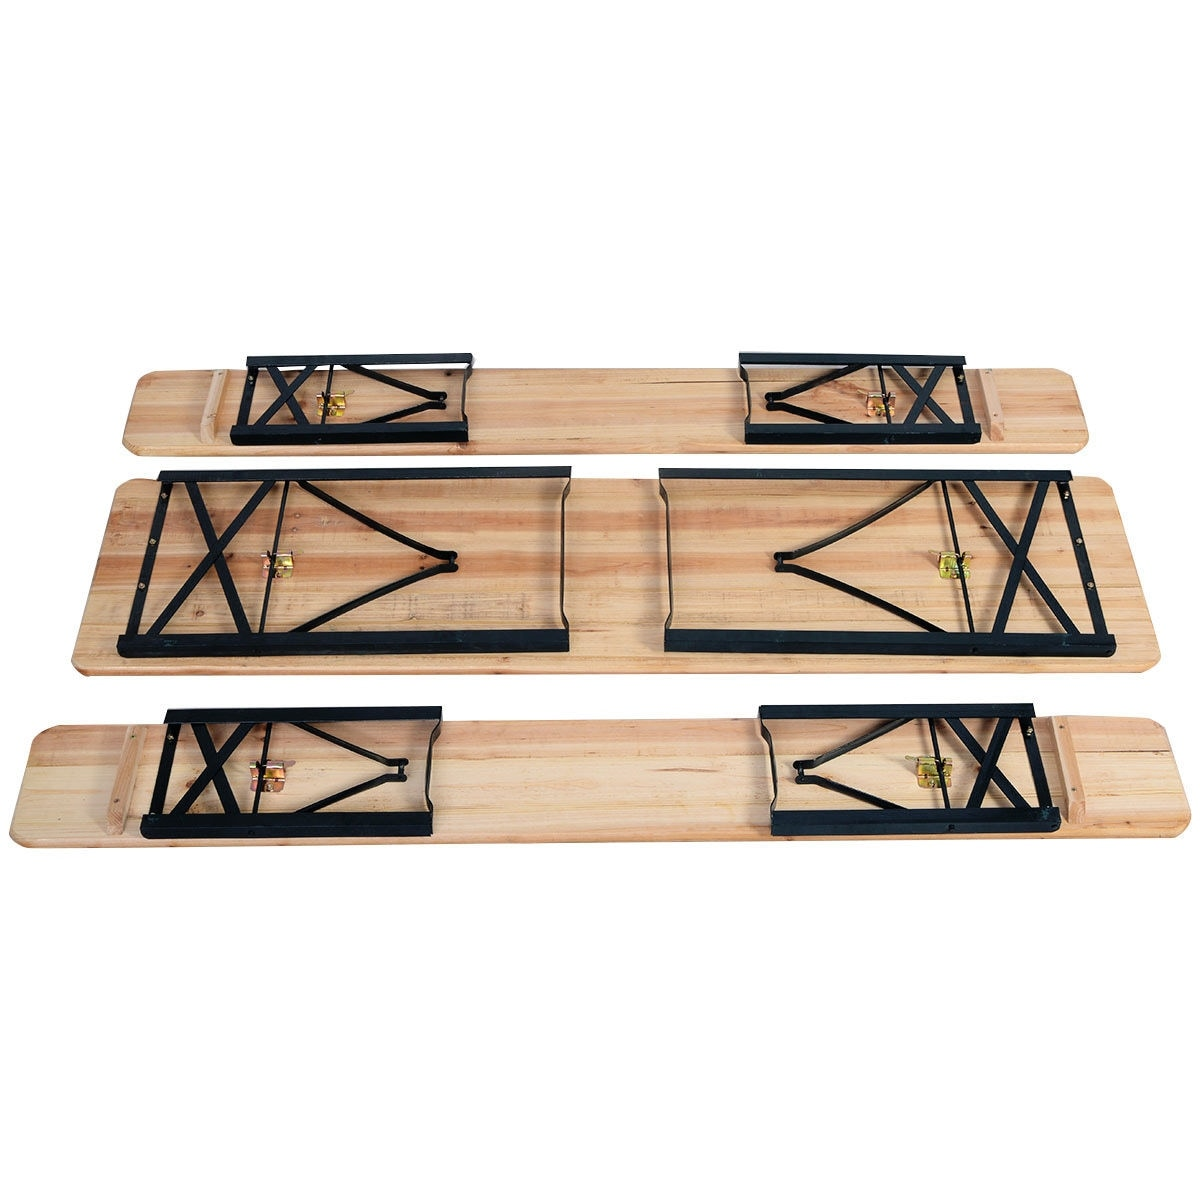 Costway 3 PCS Beer Table Bench Set Folding Wooden Top Picnic Table Patio Garden - Free Shipping Today - Overstock - 22287939  sc 1 st  Overstock & Costway 3 PCS Beer Table Bench Set Folding Wooden Top Picnic Table ...